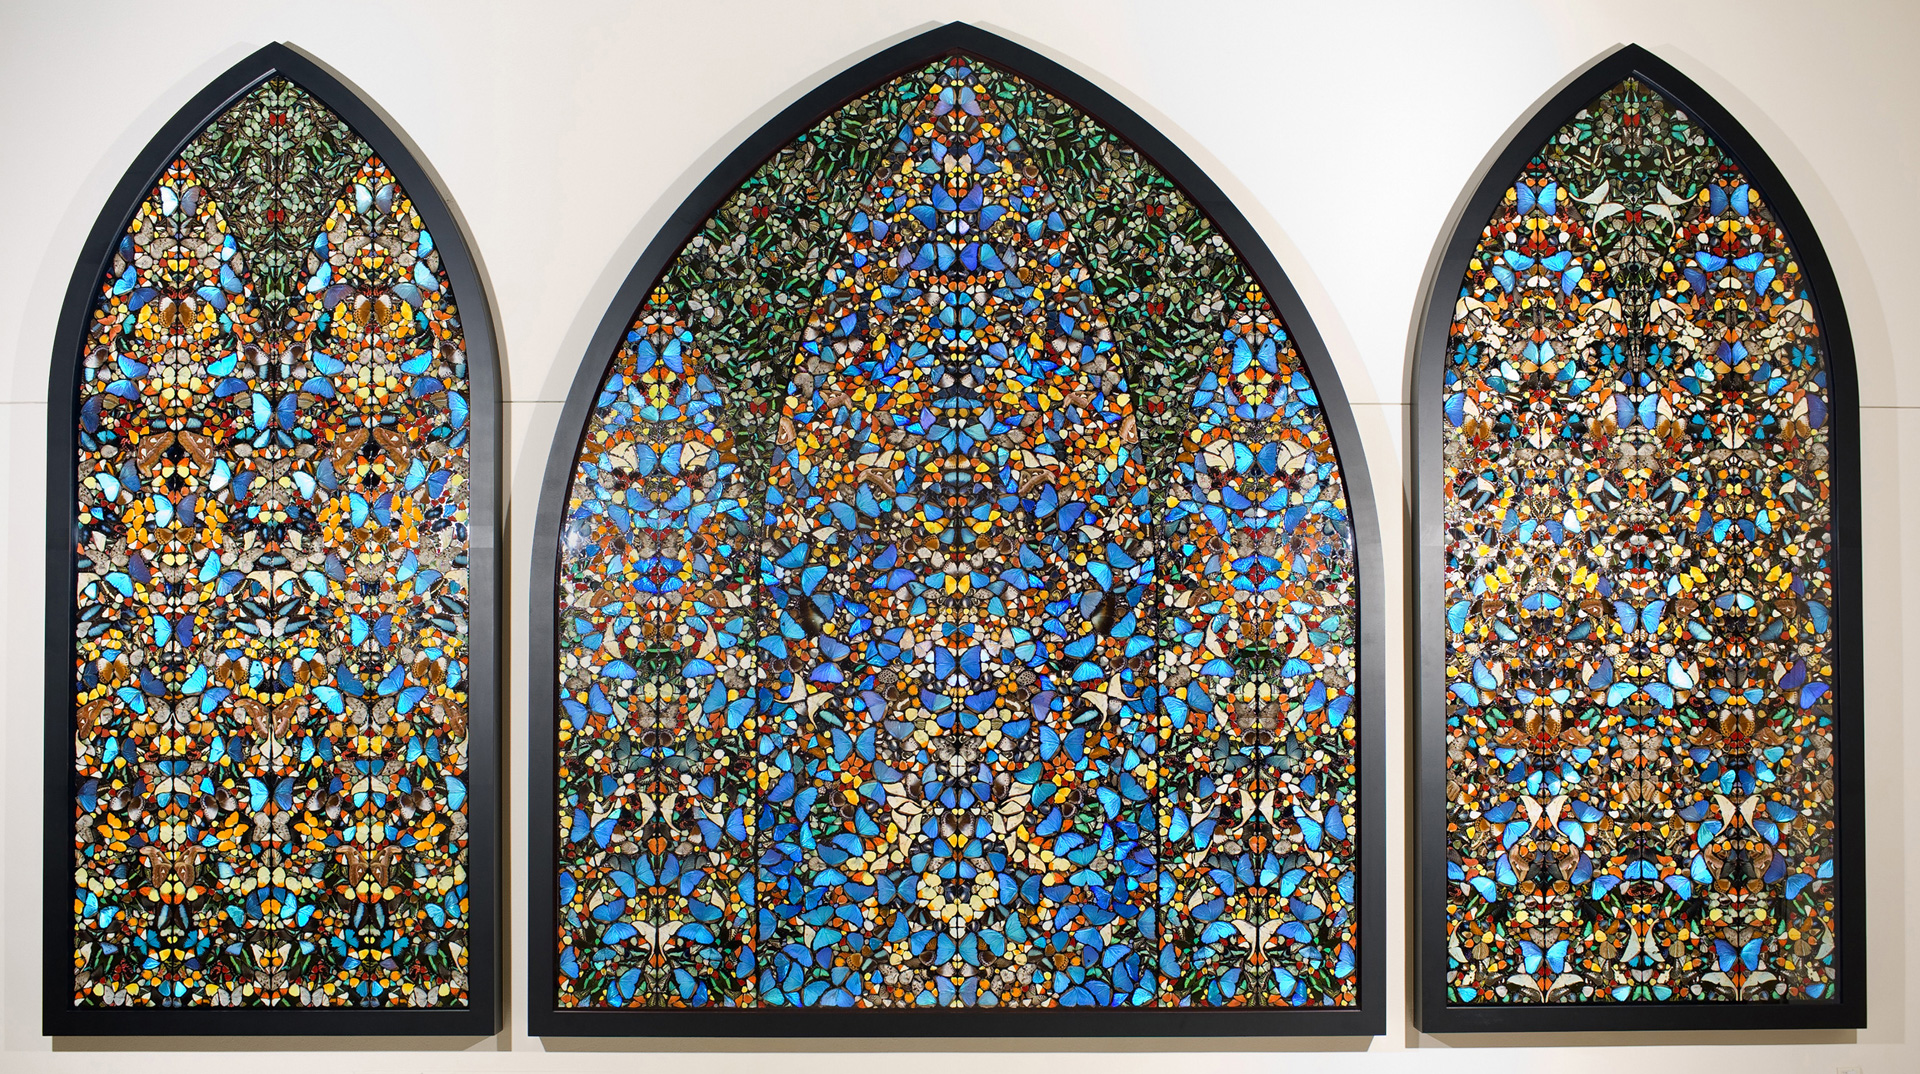 Damien Hirst - The Kingdom of the Father, 2007, butterflies and household gloss on three canvas panels